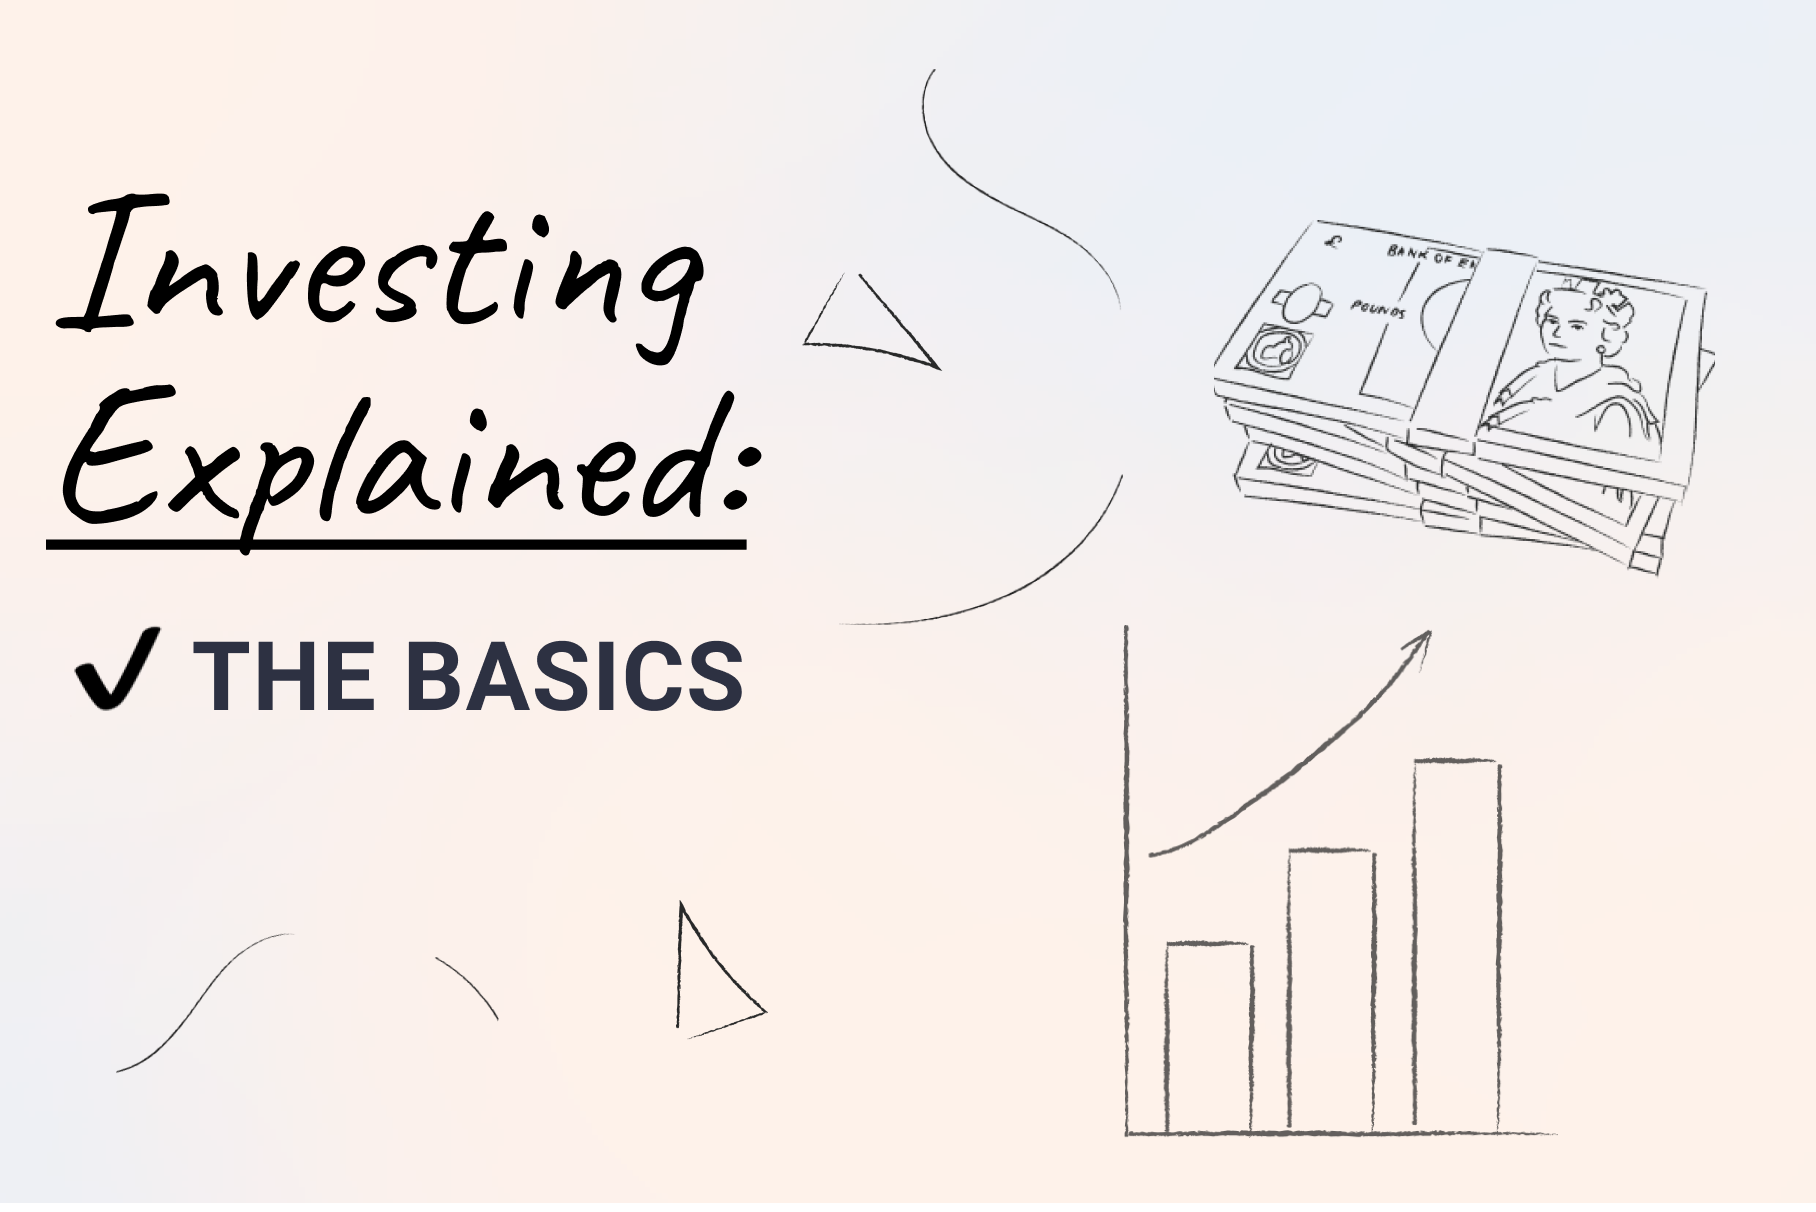 Investing Explained: The Basics